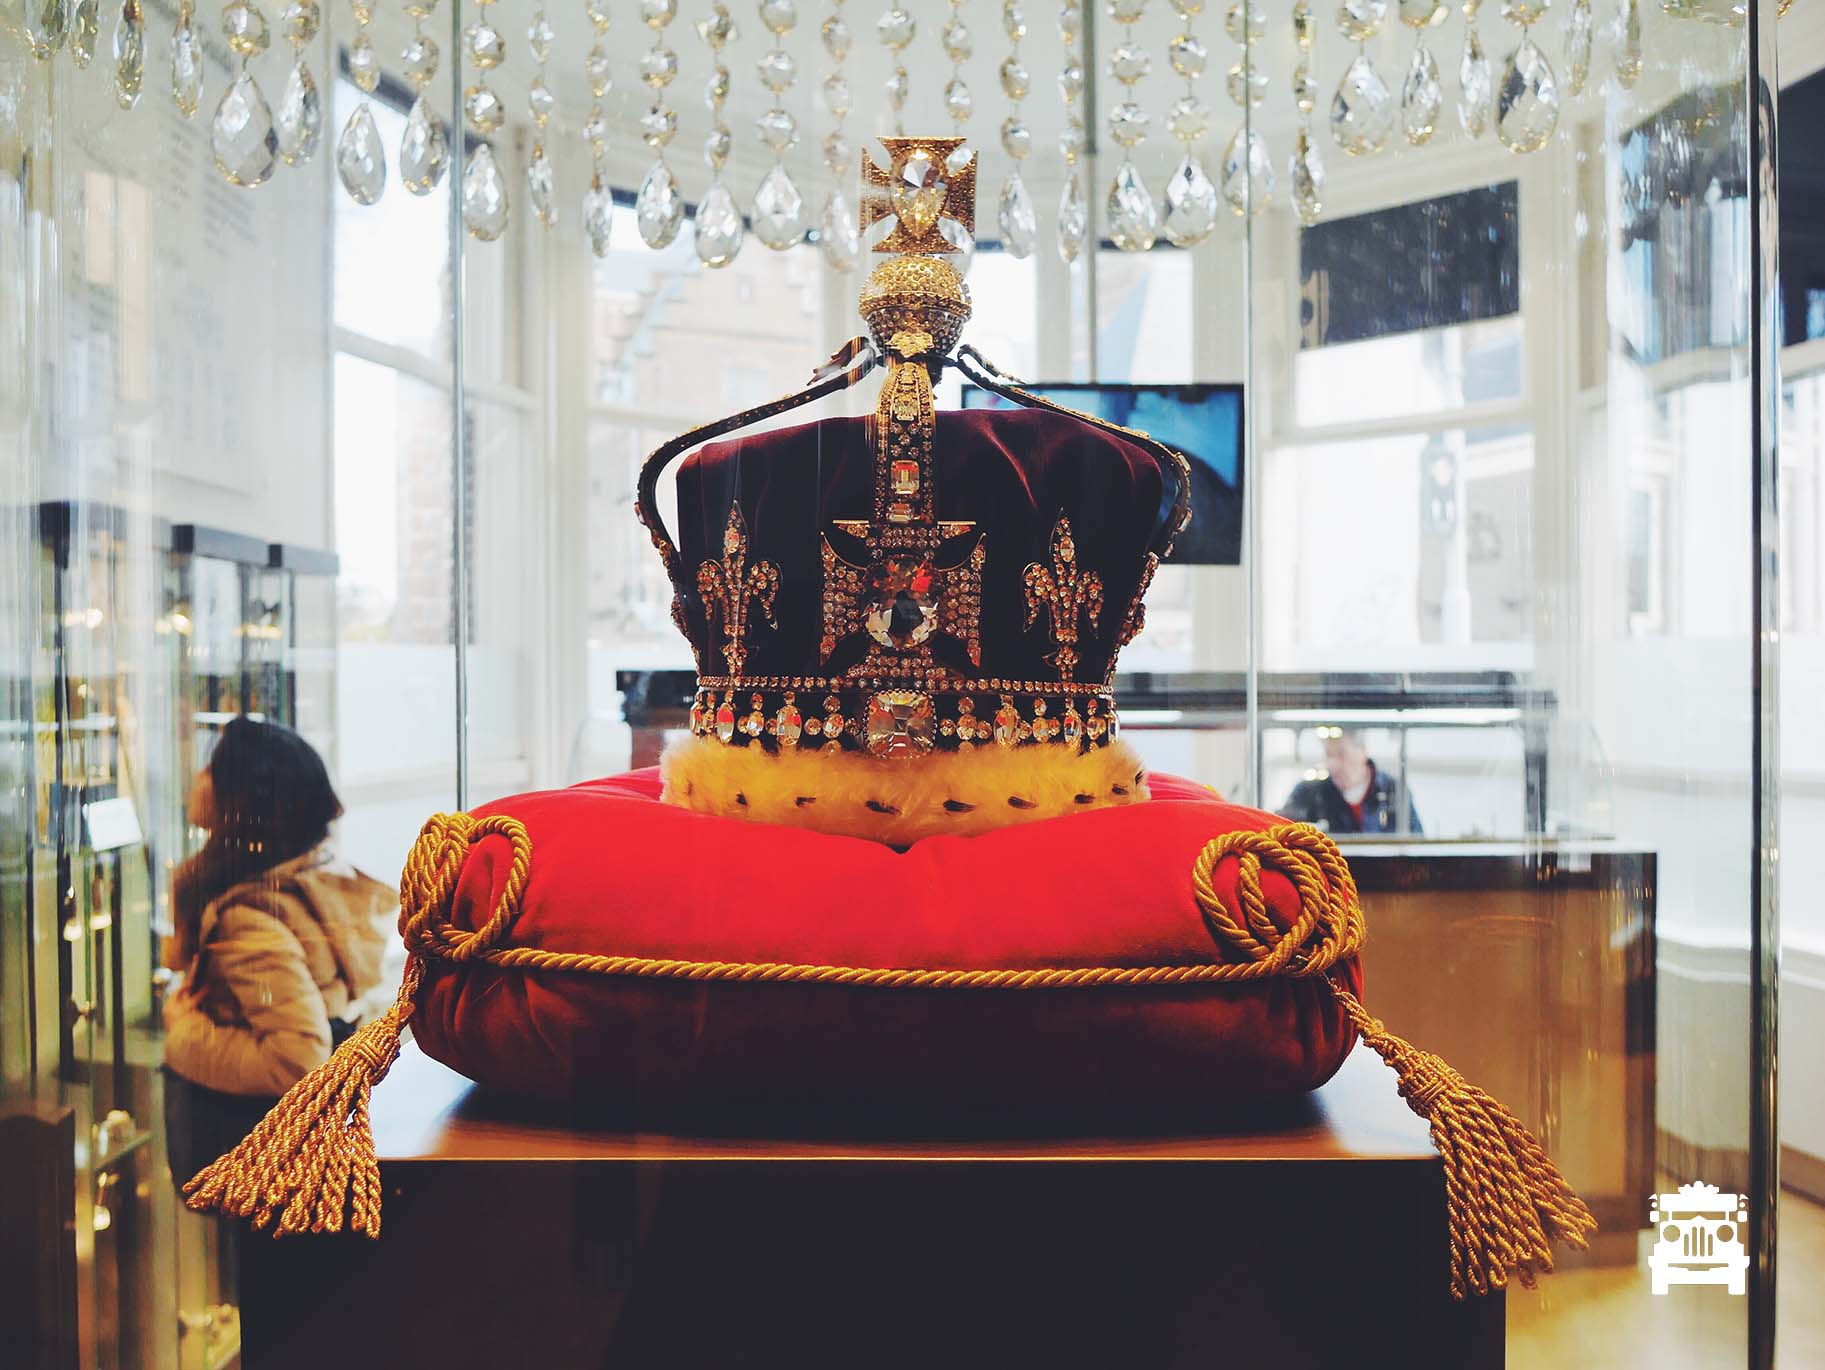 Replica of one of the crown jewels, not sure whose